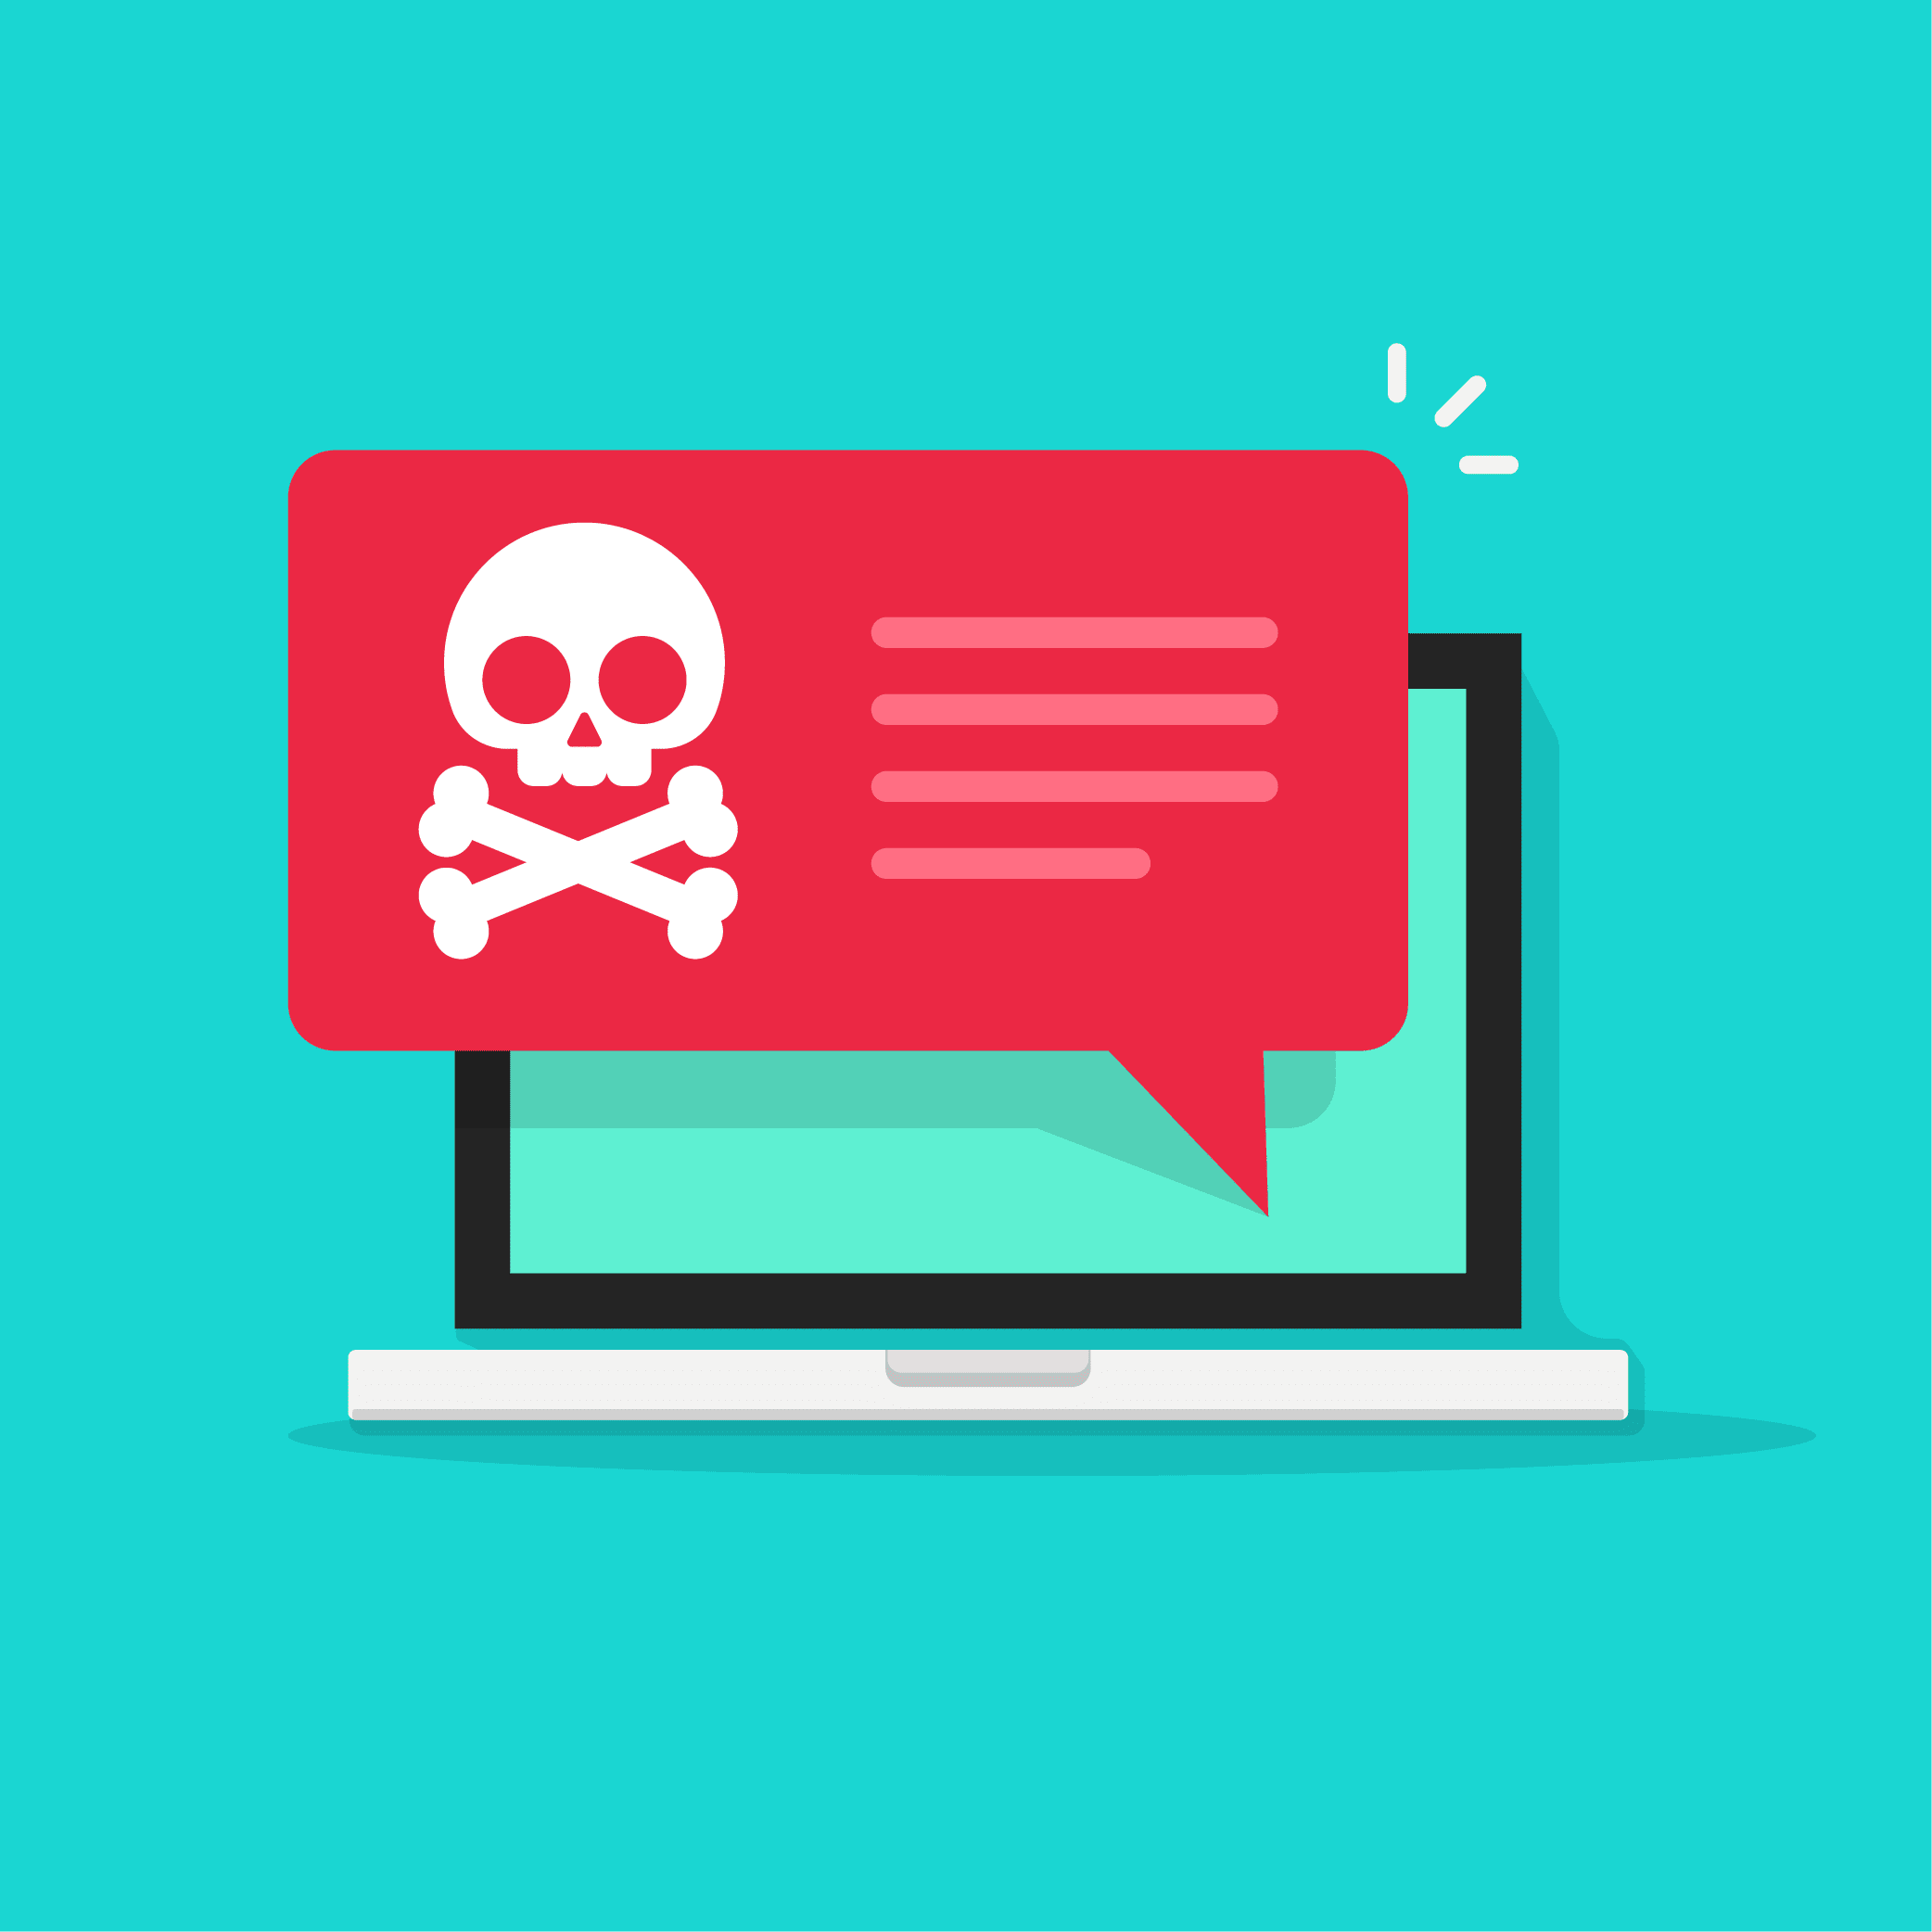 new-ransomware-campaign-is-targeting-google-chrome-users-with-fake-font-update-alerts.png